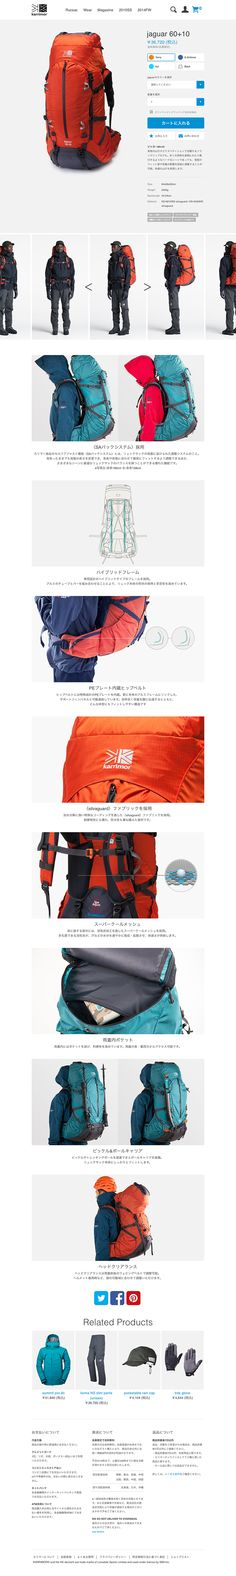 http://www.karrimor.jp/products/detail.php?product_id=40